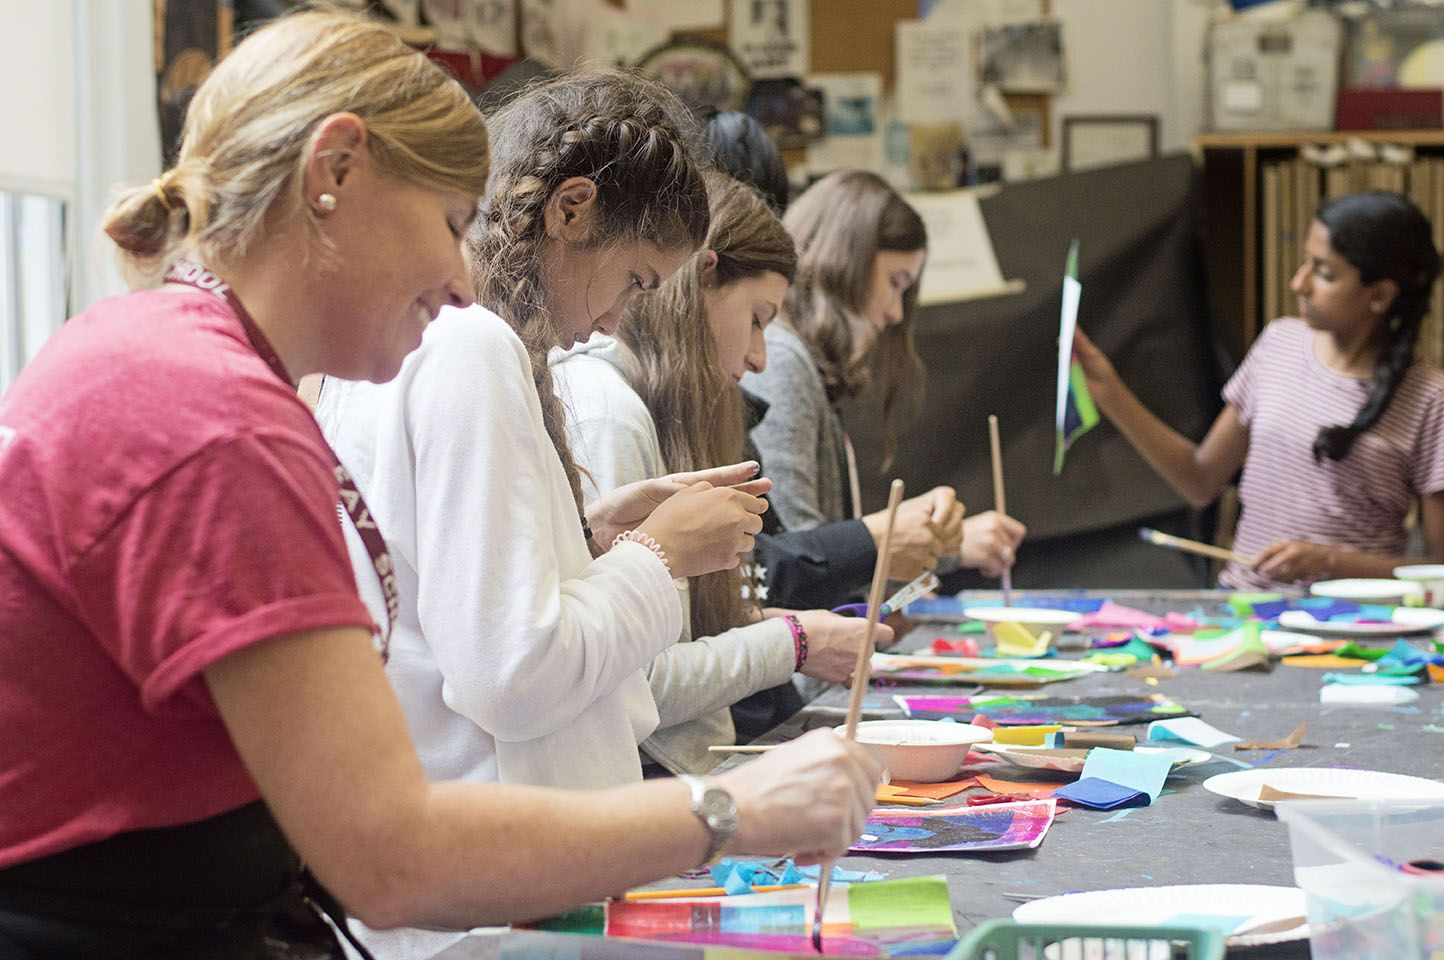 Find your inner (or outer!) artist! Summer is a perfect time to express yourself in new ways, and our studios offer a range of media to explore, from watercolor and oils, to printmaking, sculpture, and ceramics.